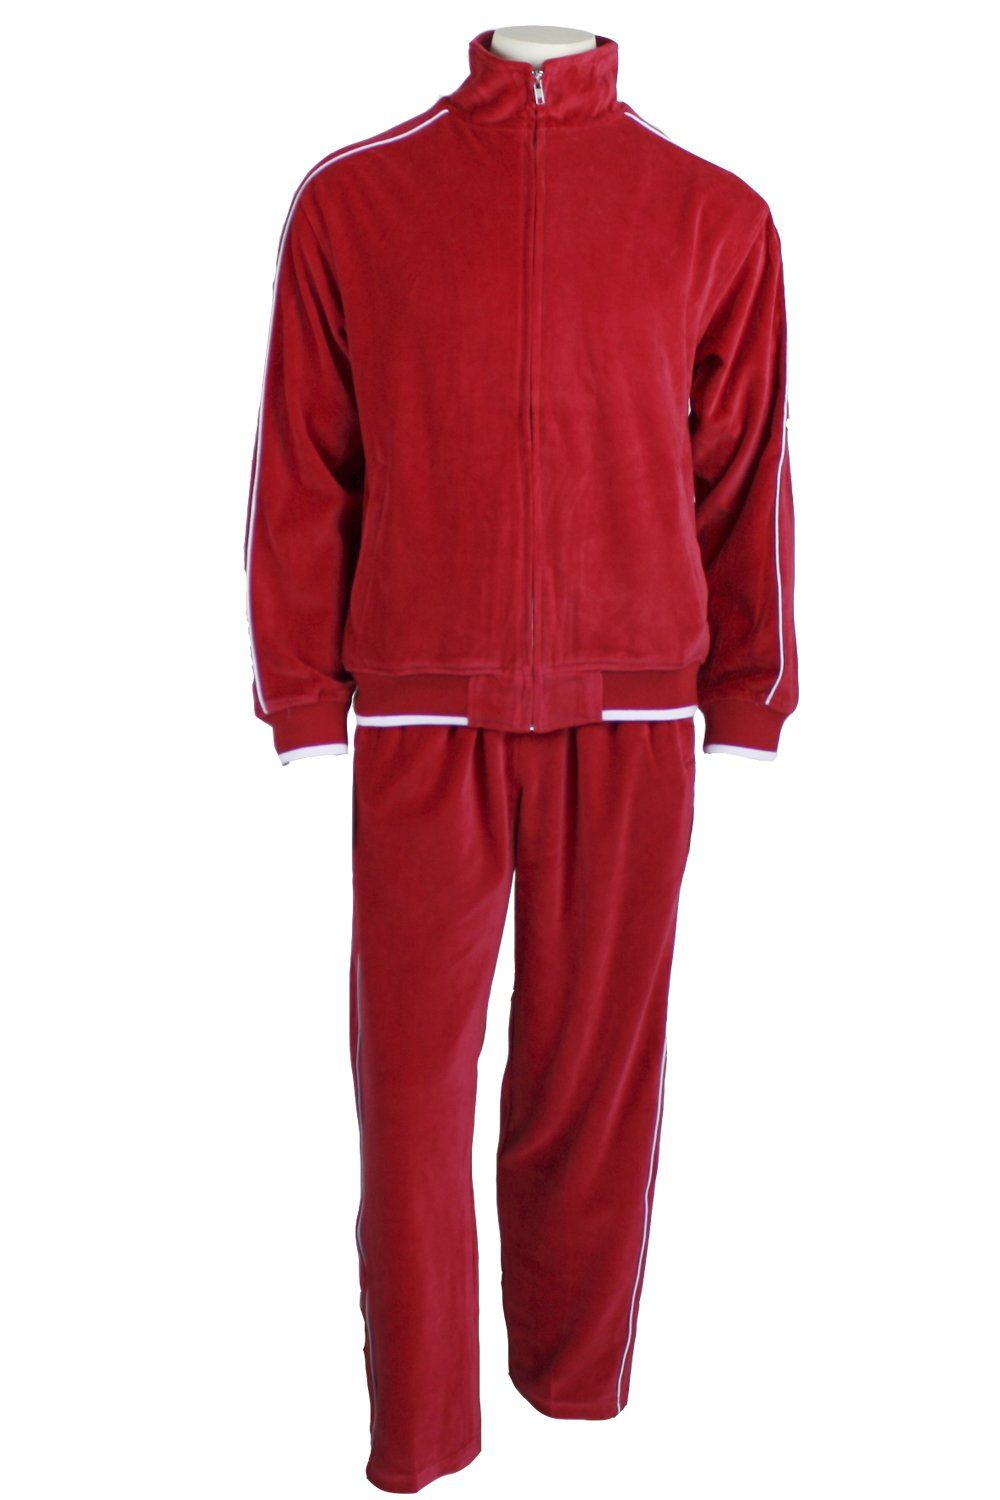 Mens Velour Tracksuit Small Red Mens Velour Tracksuit